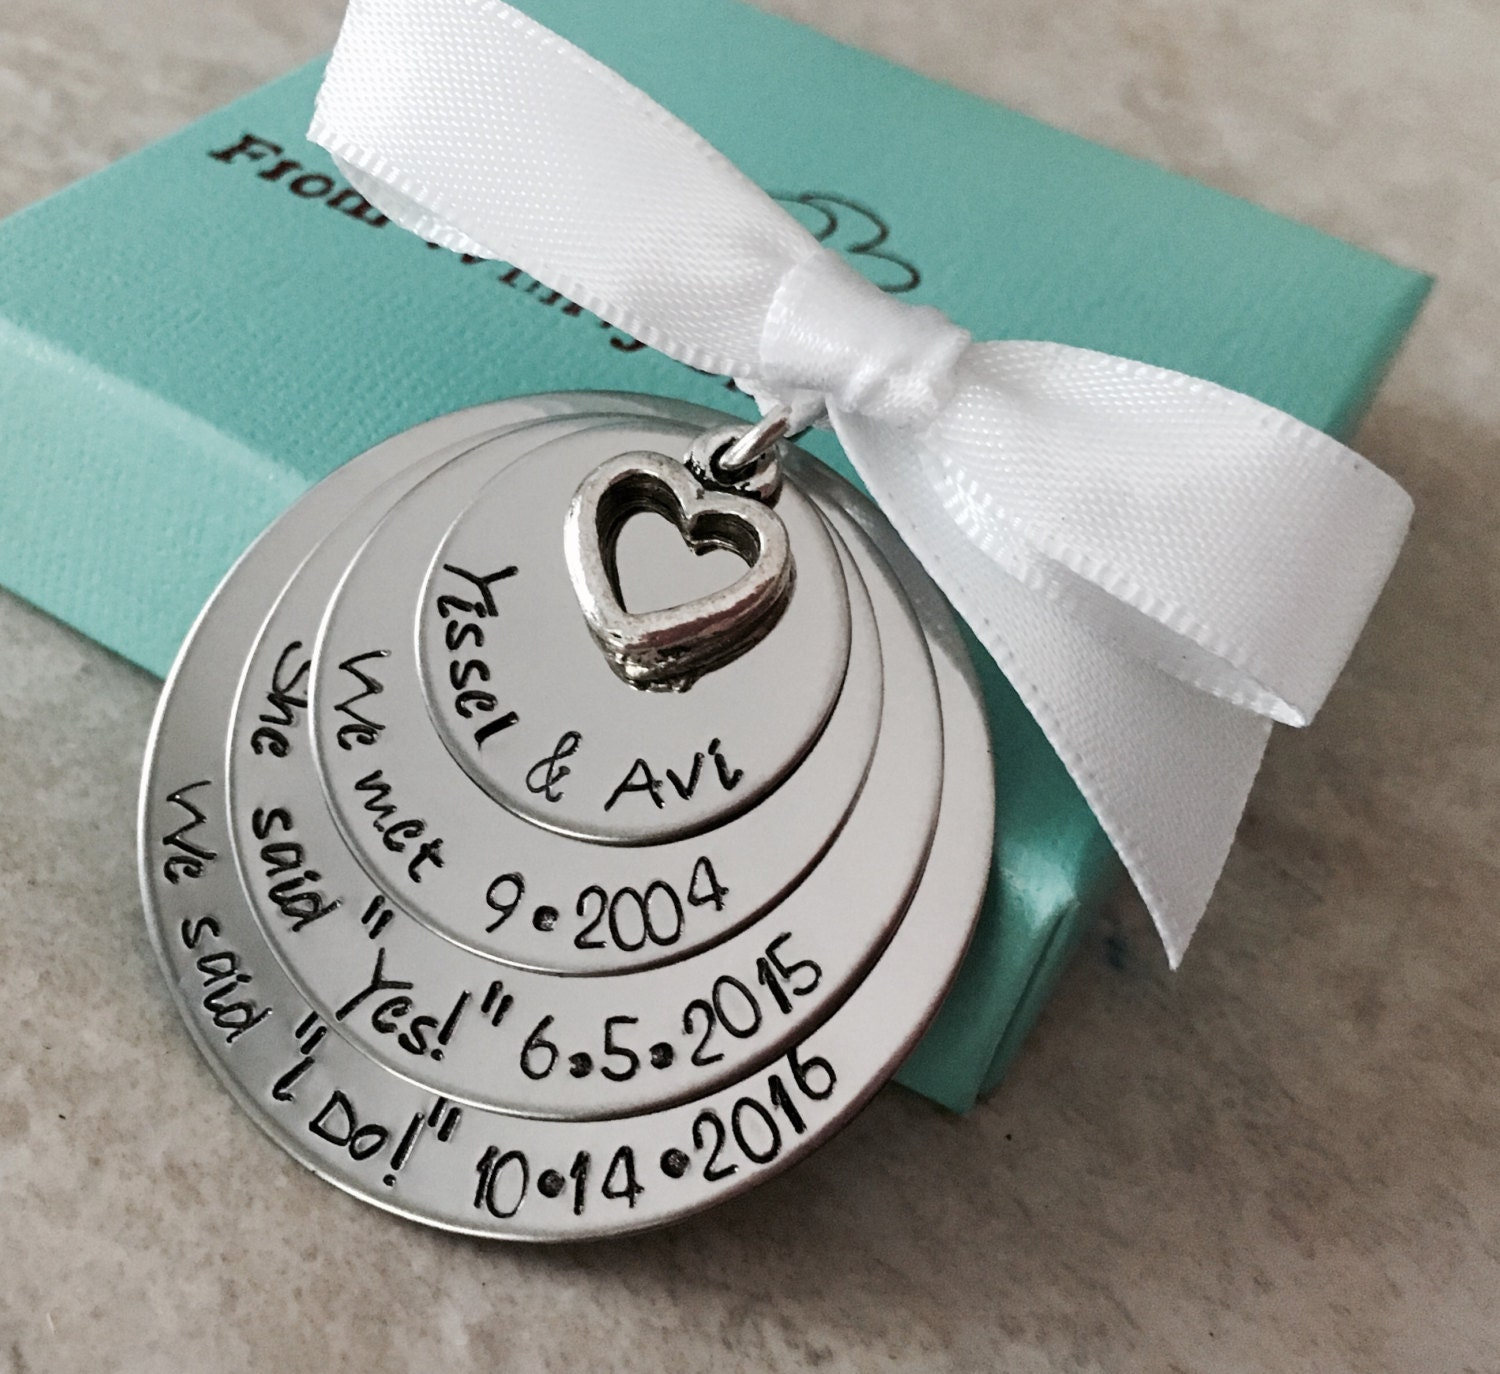 Personalized wedding christmas ornament - Personalized Christmas Ornament Our First Christmas She Said Yes Engagement Ornament Wedding Date Holiday Decorations Family Ornament